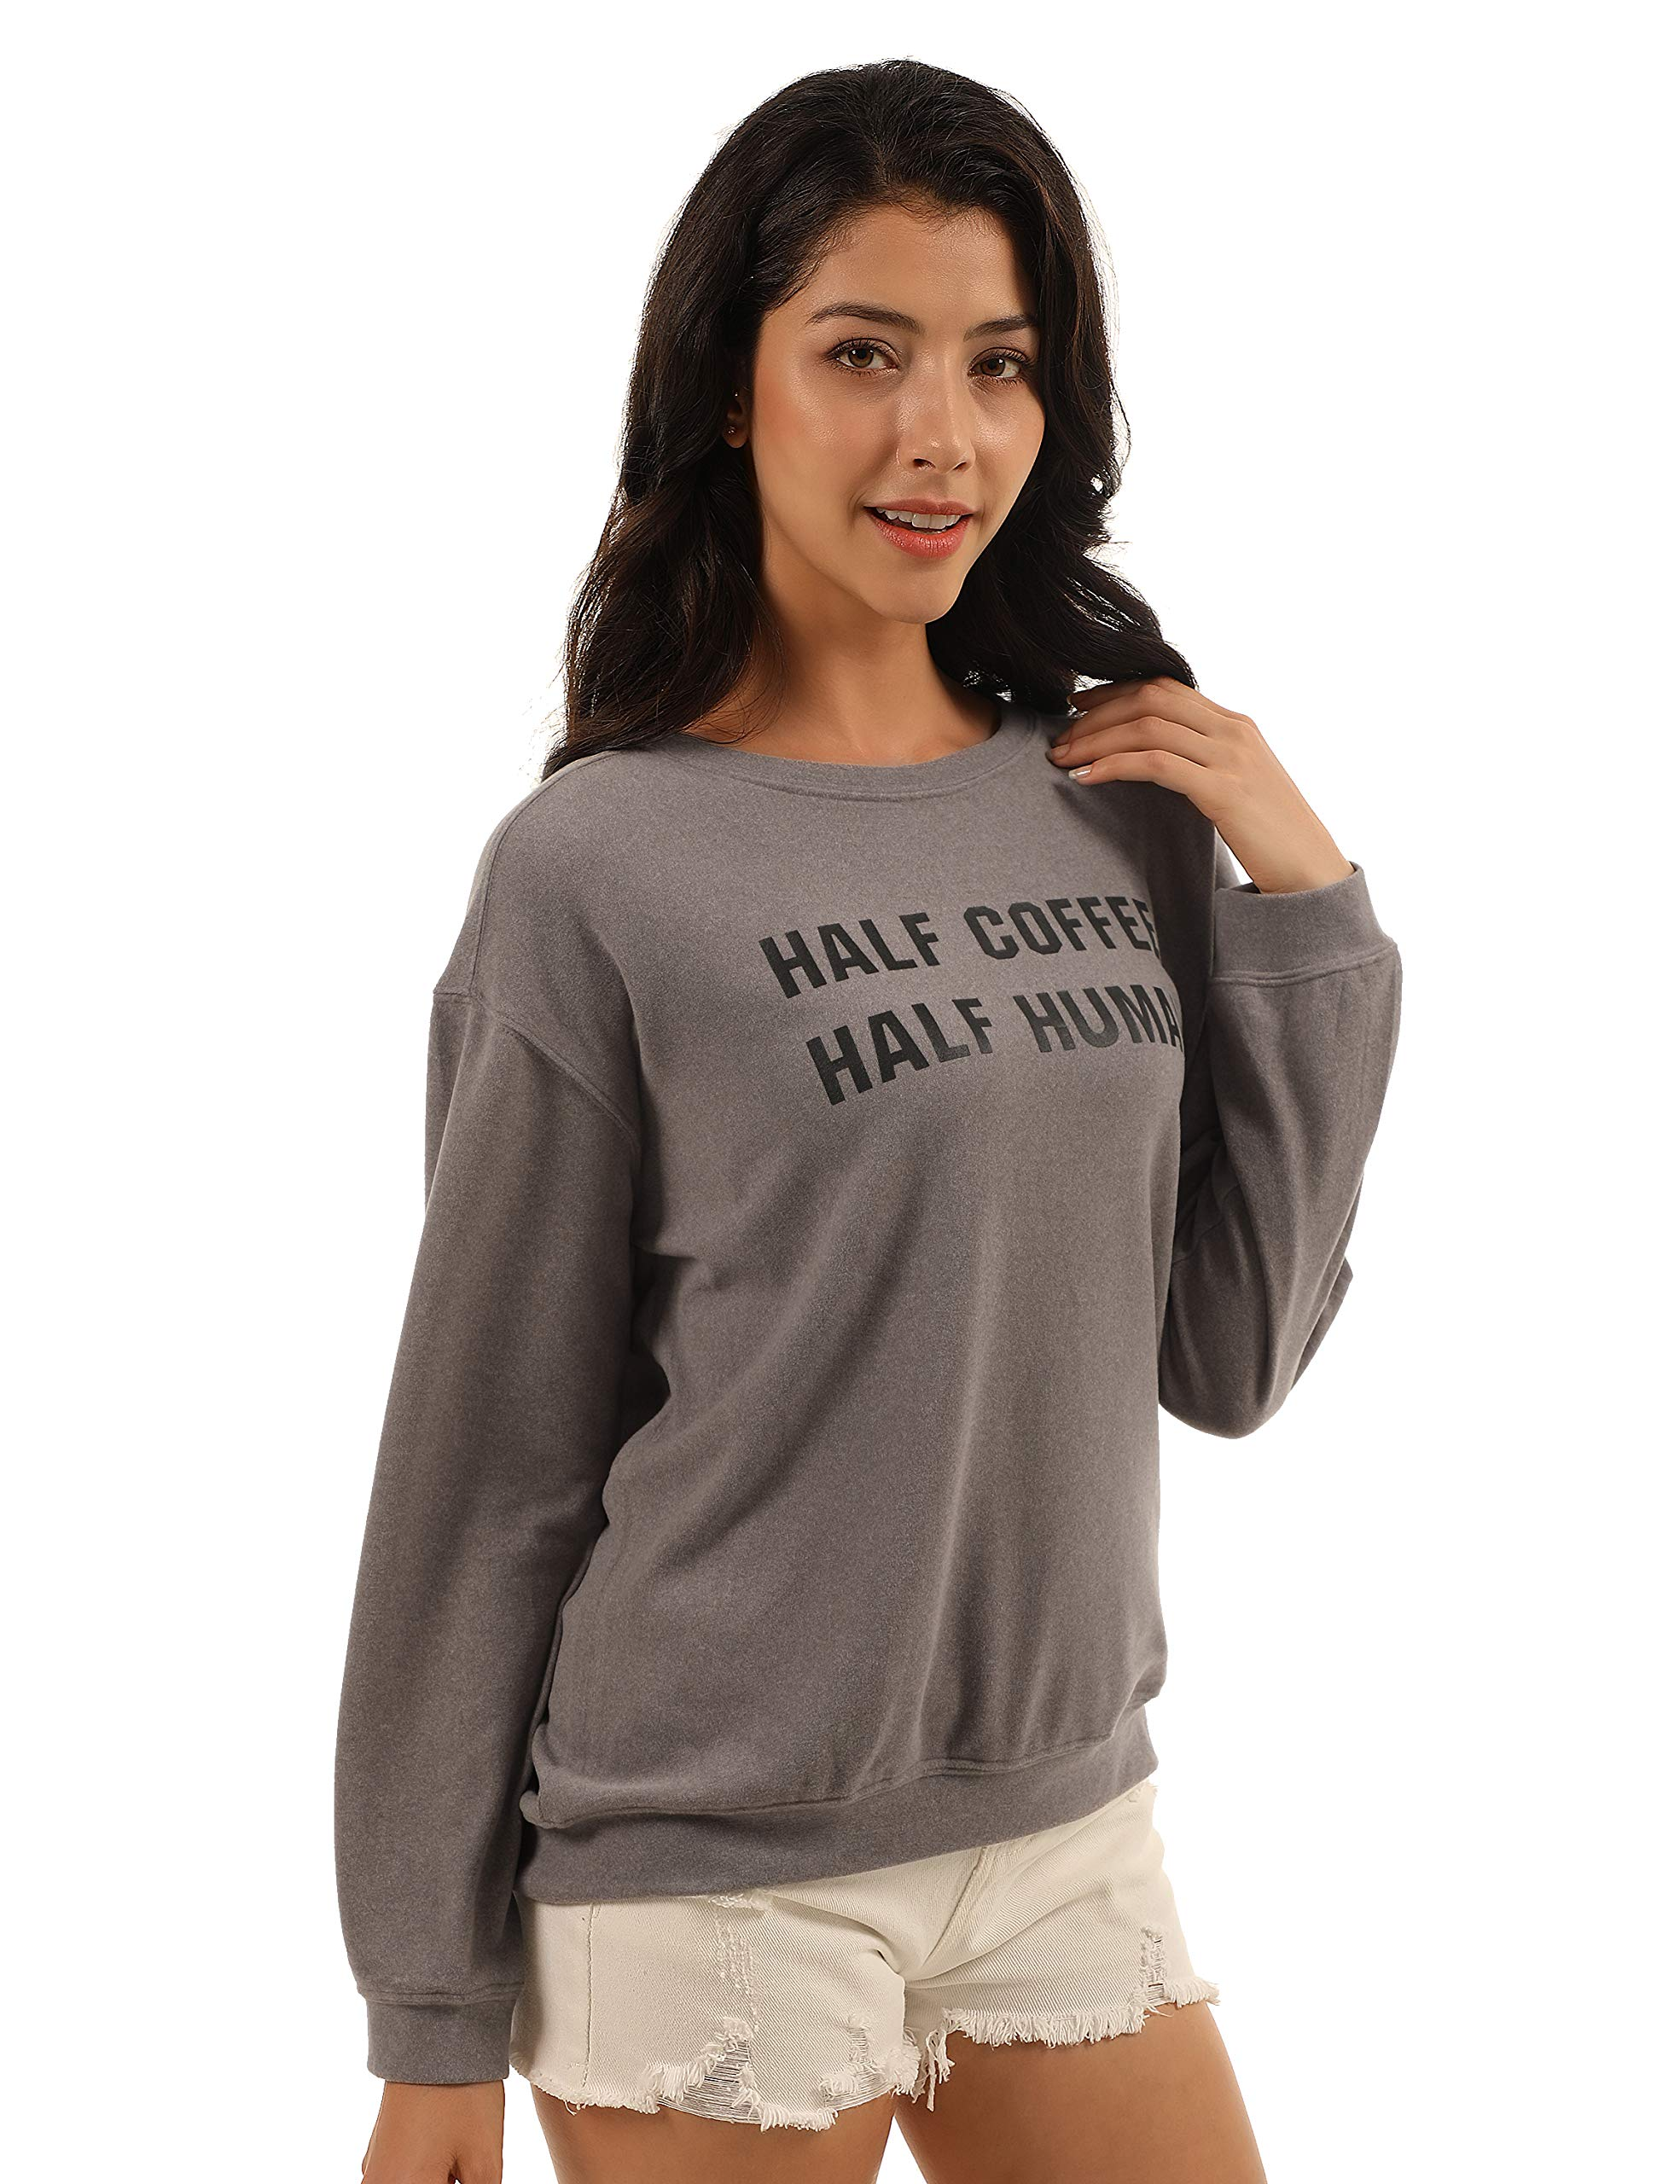 Blooming Jelly Womens Pullover Crewneck Sweatshirt Letter Print Long Sleeve Shirt Oversized Graphic Casual Top (x-Large, Grey)